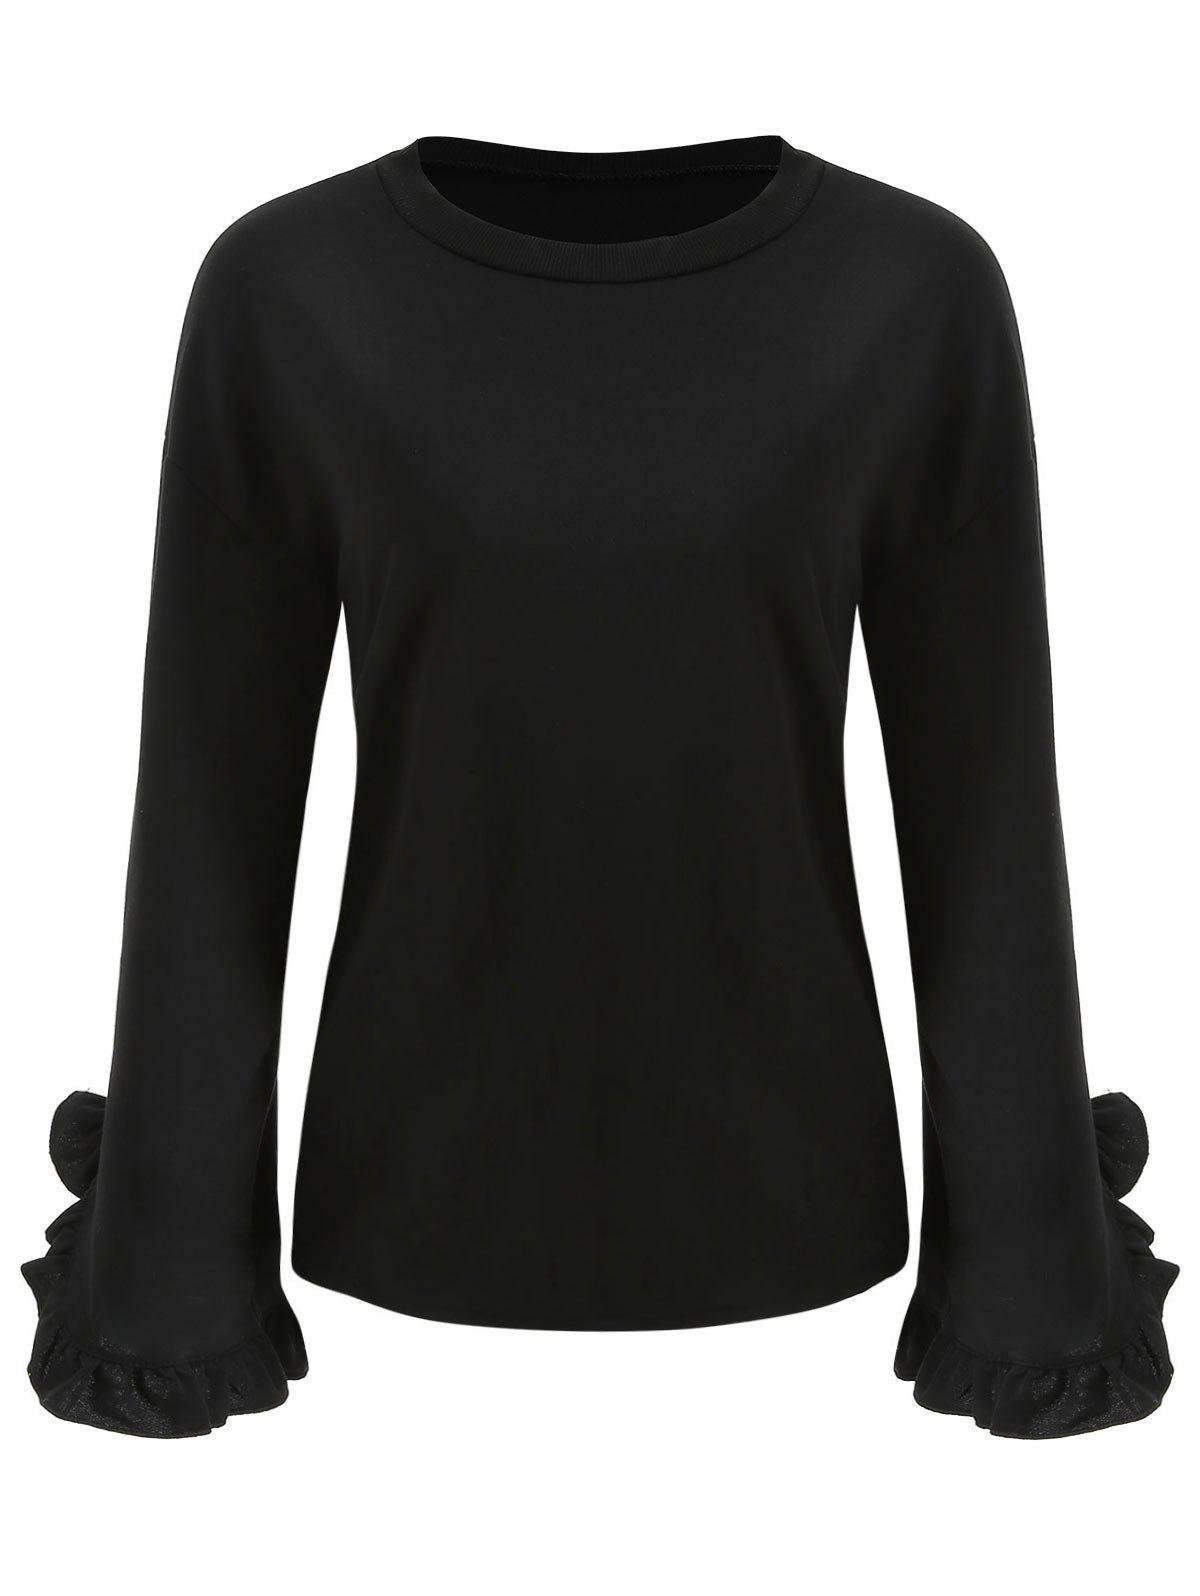 Hot Flare Sleeve Round Neck Top